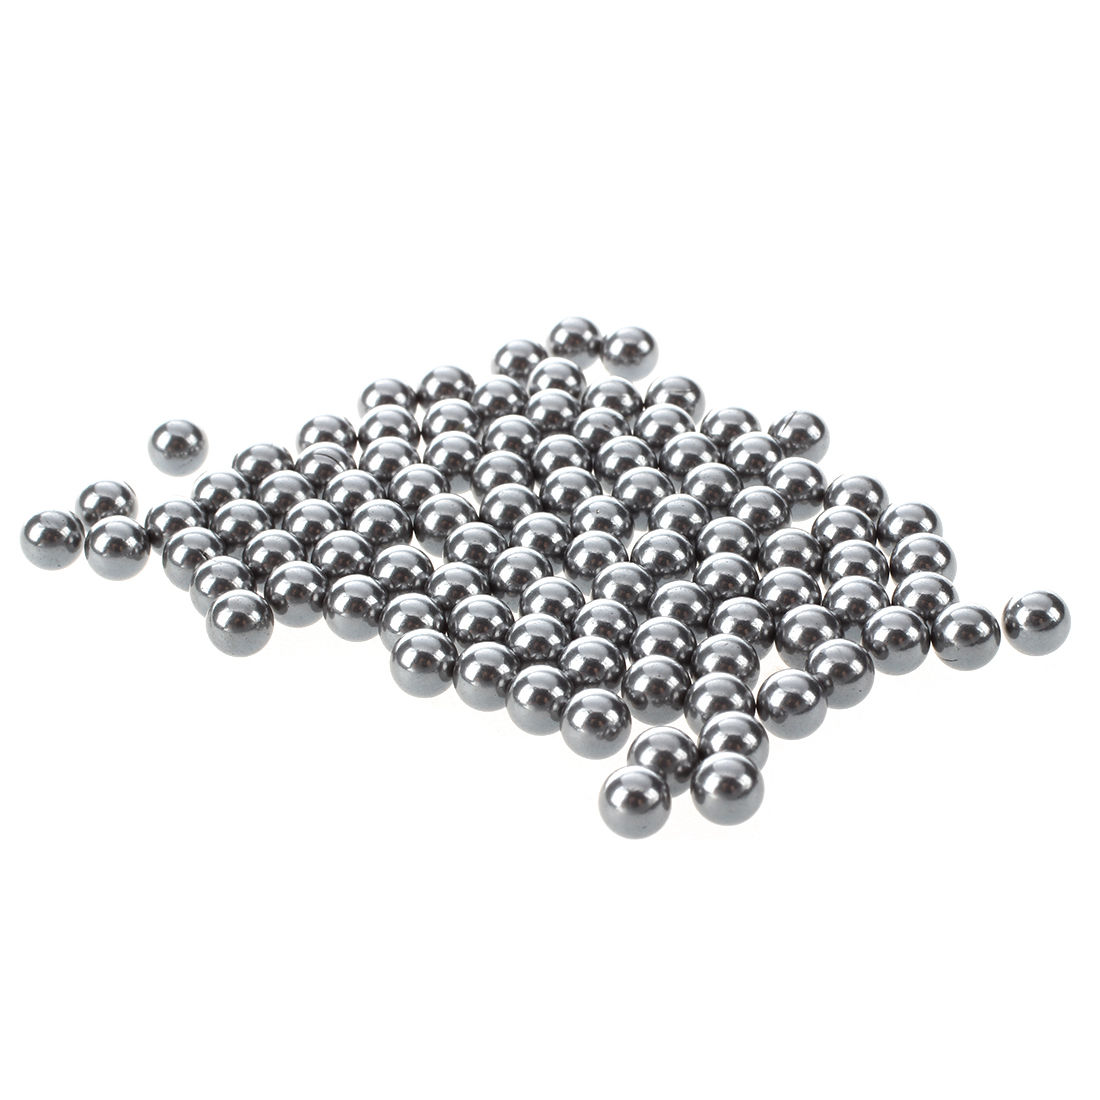 Bike Wheel Bearing Steel Balls Replacement 5mm Diameter 100 Pcs